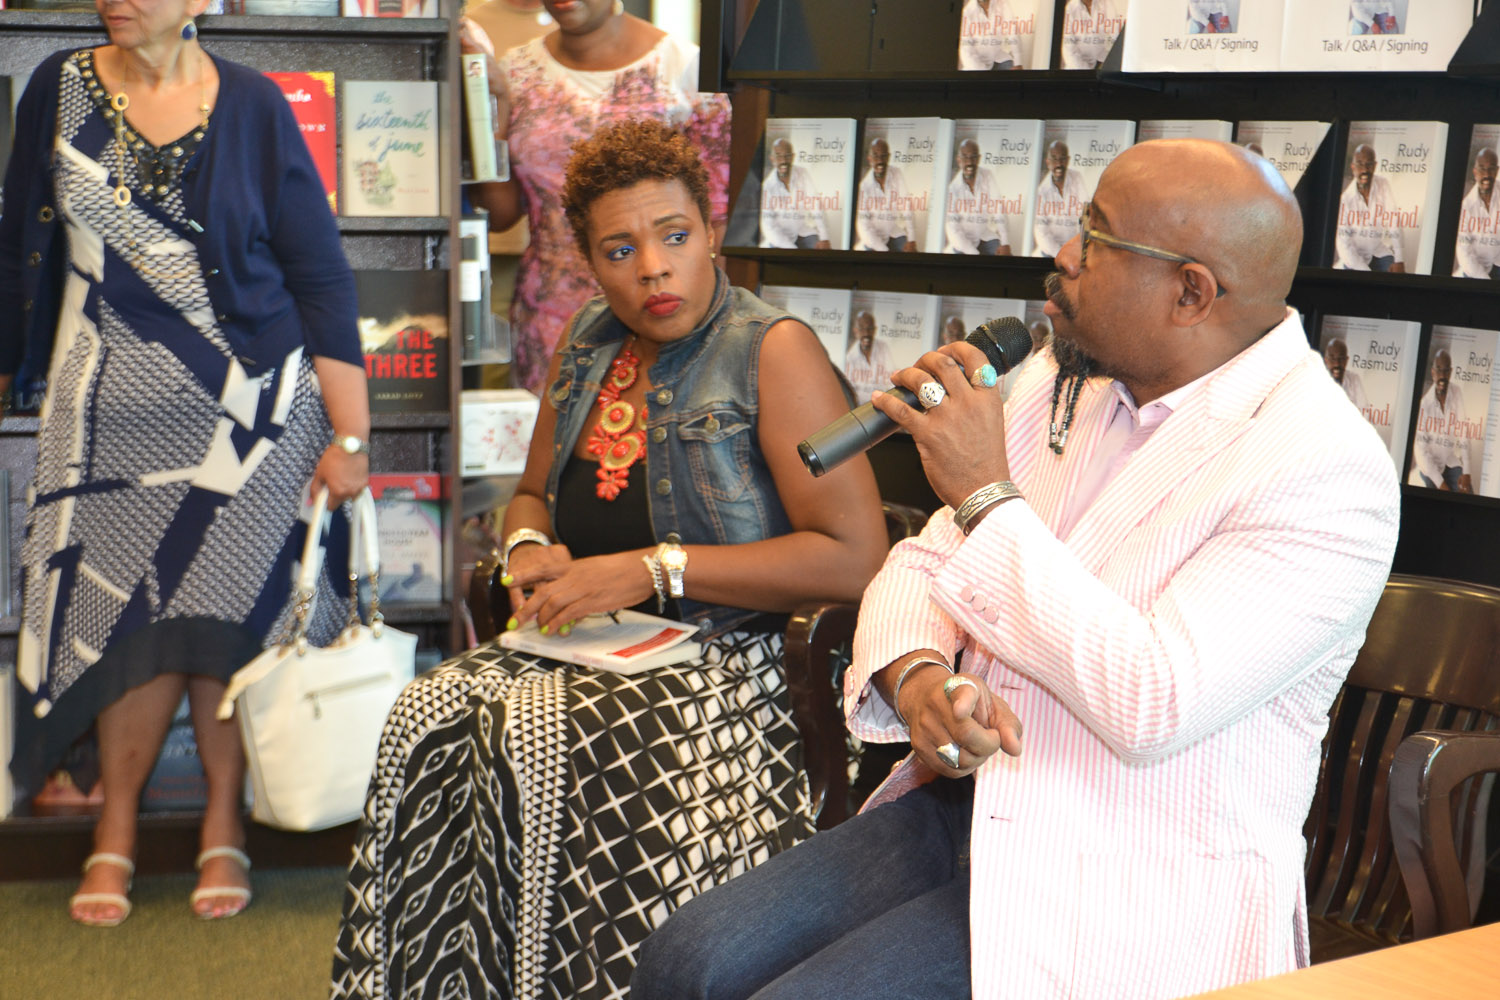 Paster Rudy book signing -0132.jpg